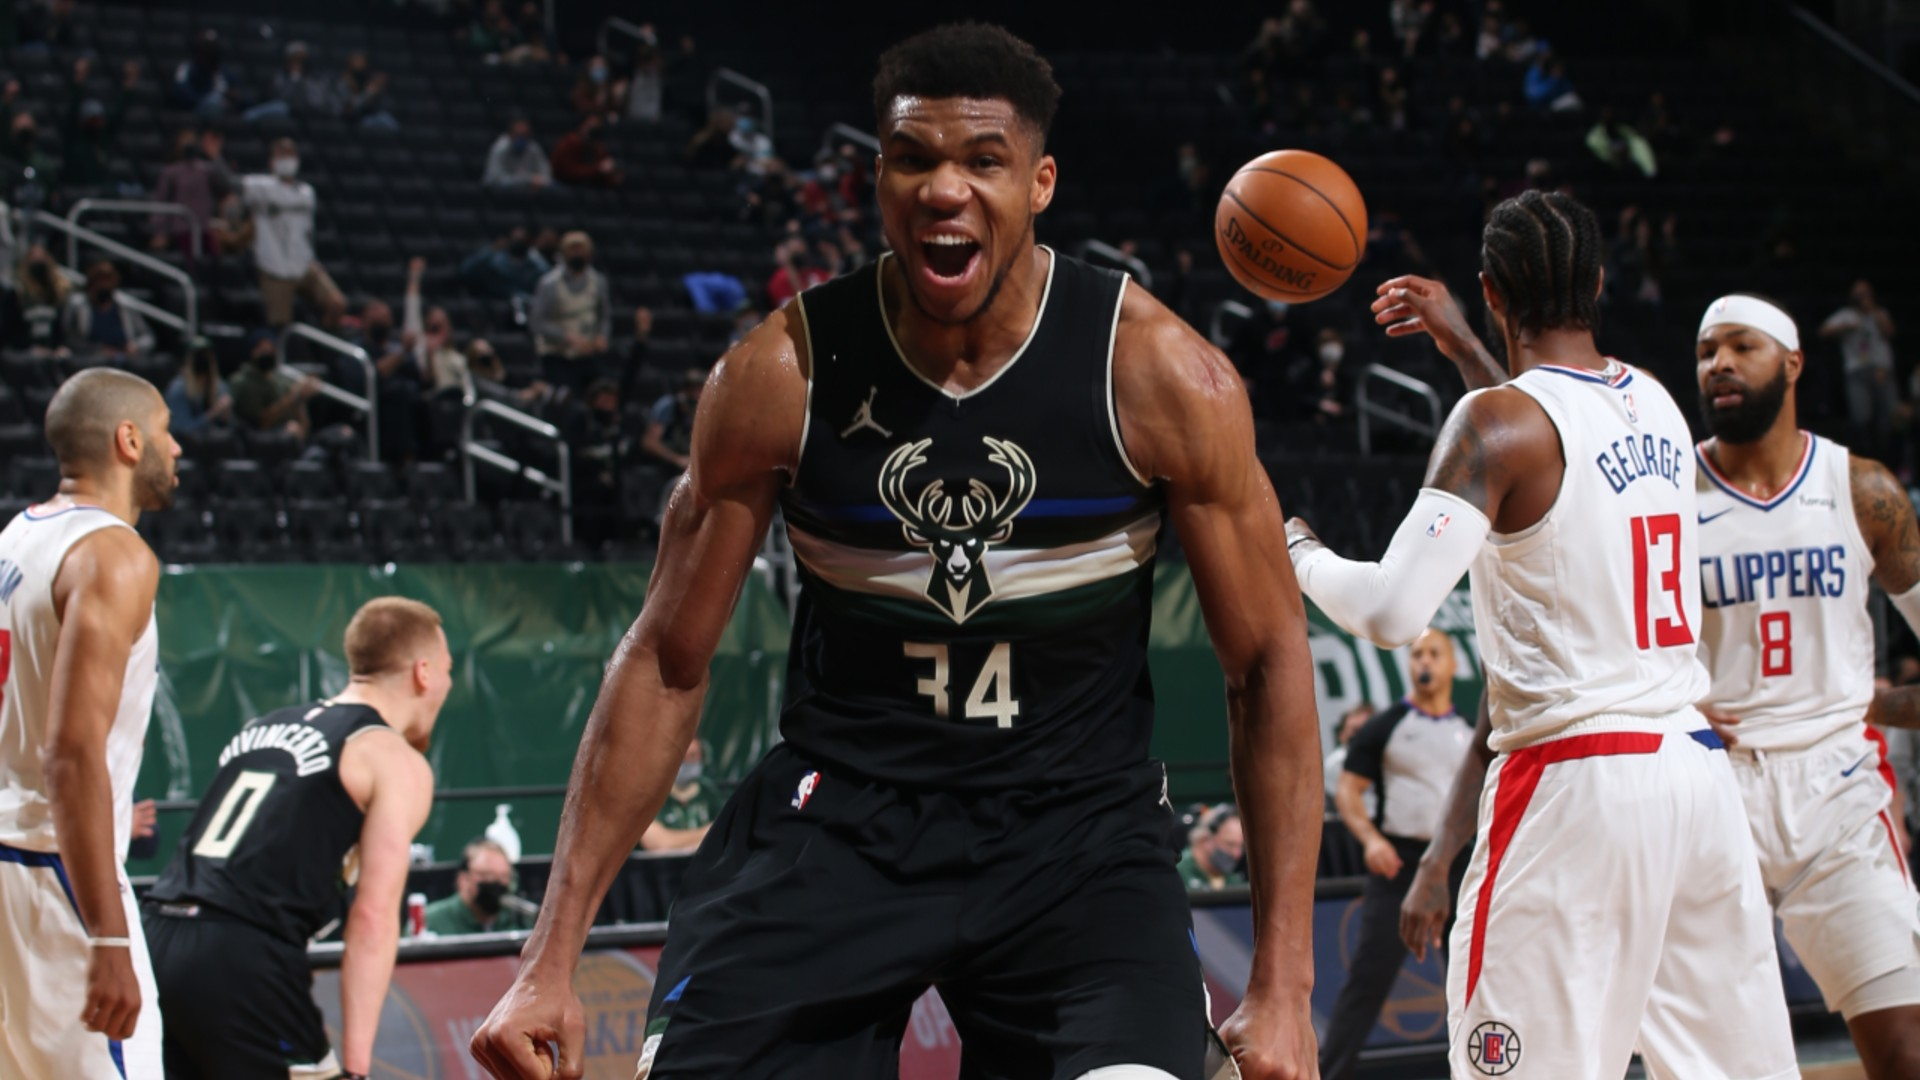 Giannis Antetokounmpo reflected on the Milwaukee Bucks' come-from-behind win over the Los Angeles Clippers on Sunday.